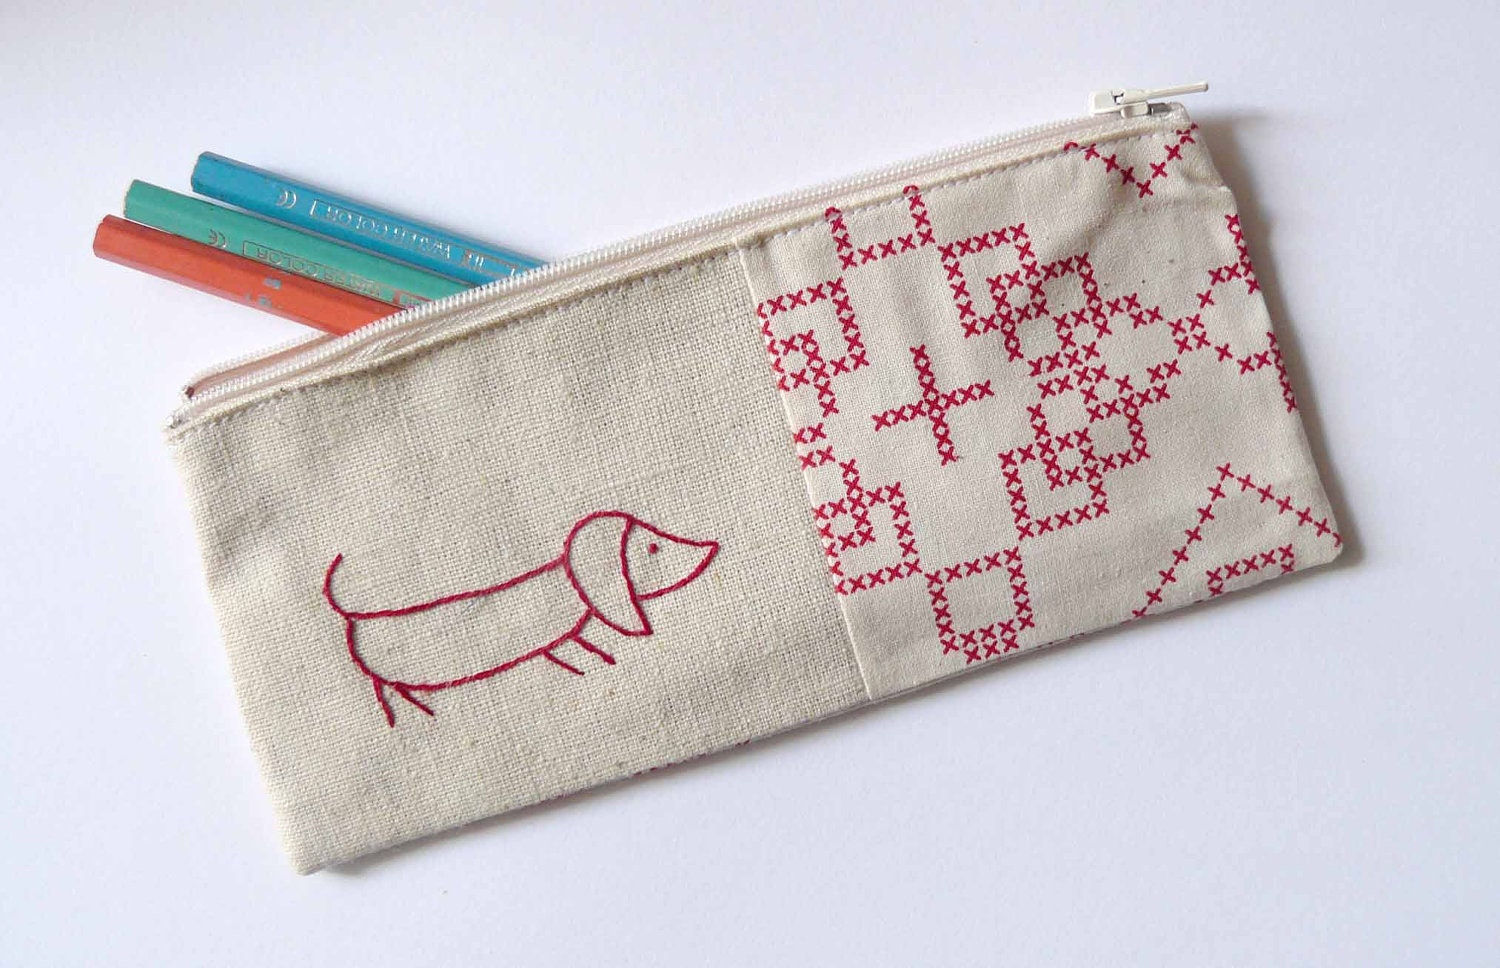 pencil case with red sausage dog embroidery. cross stitch patterned taupe fabric - edwardandlilly